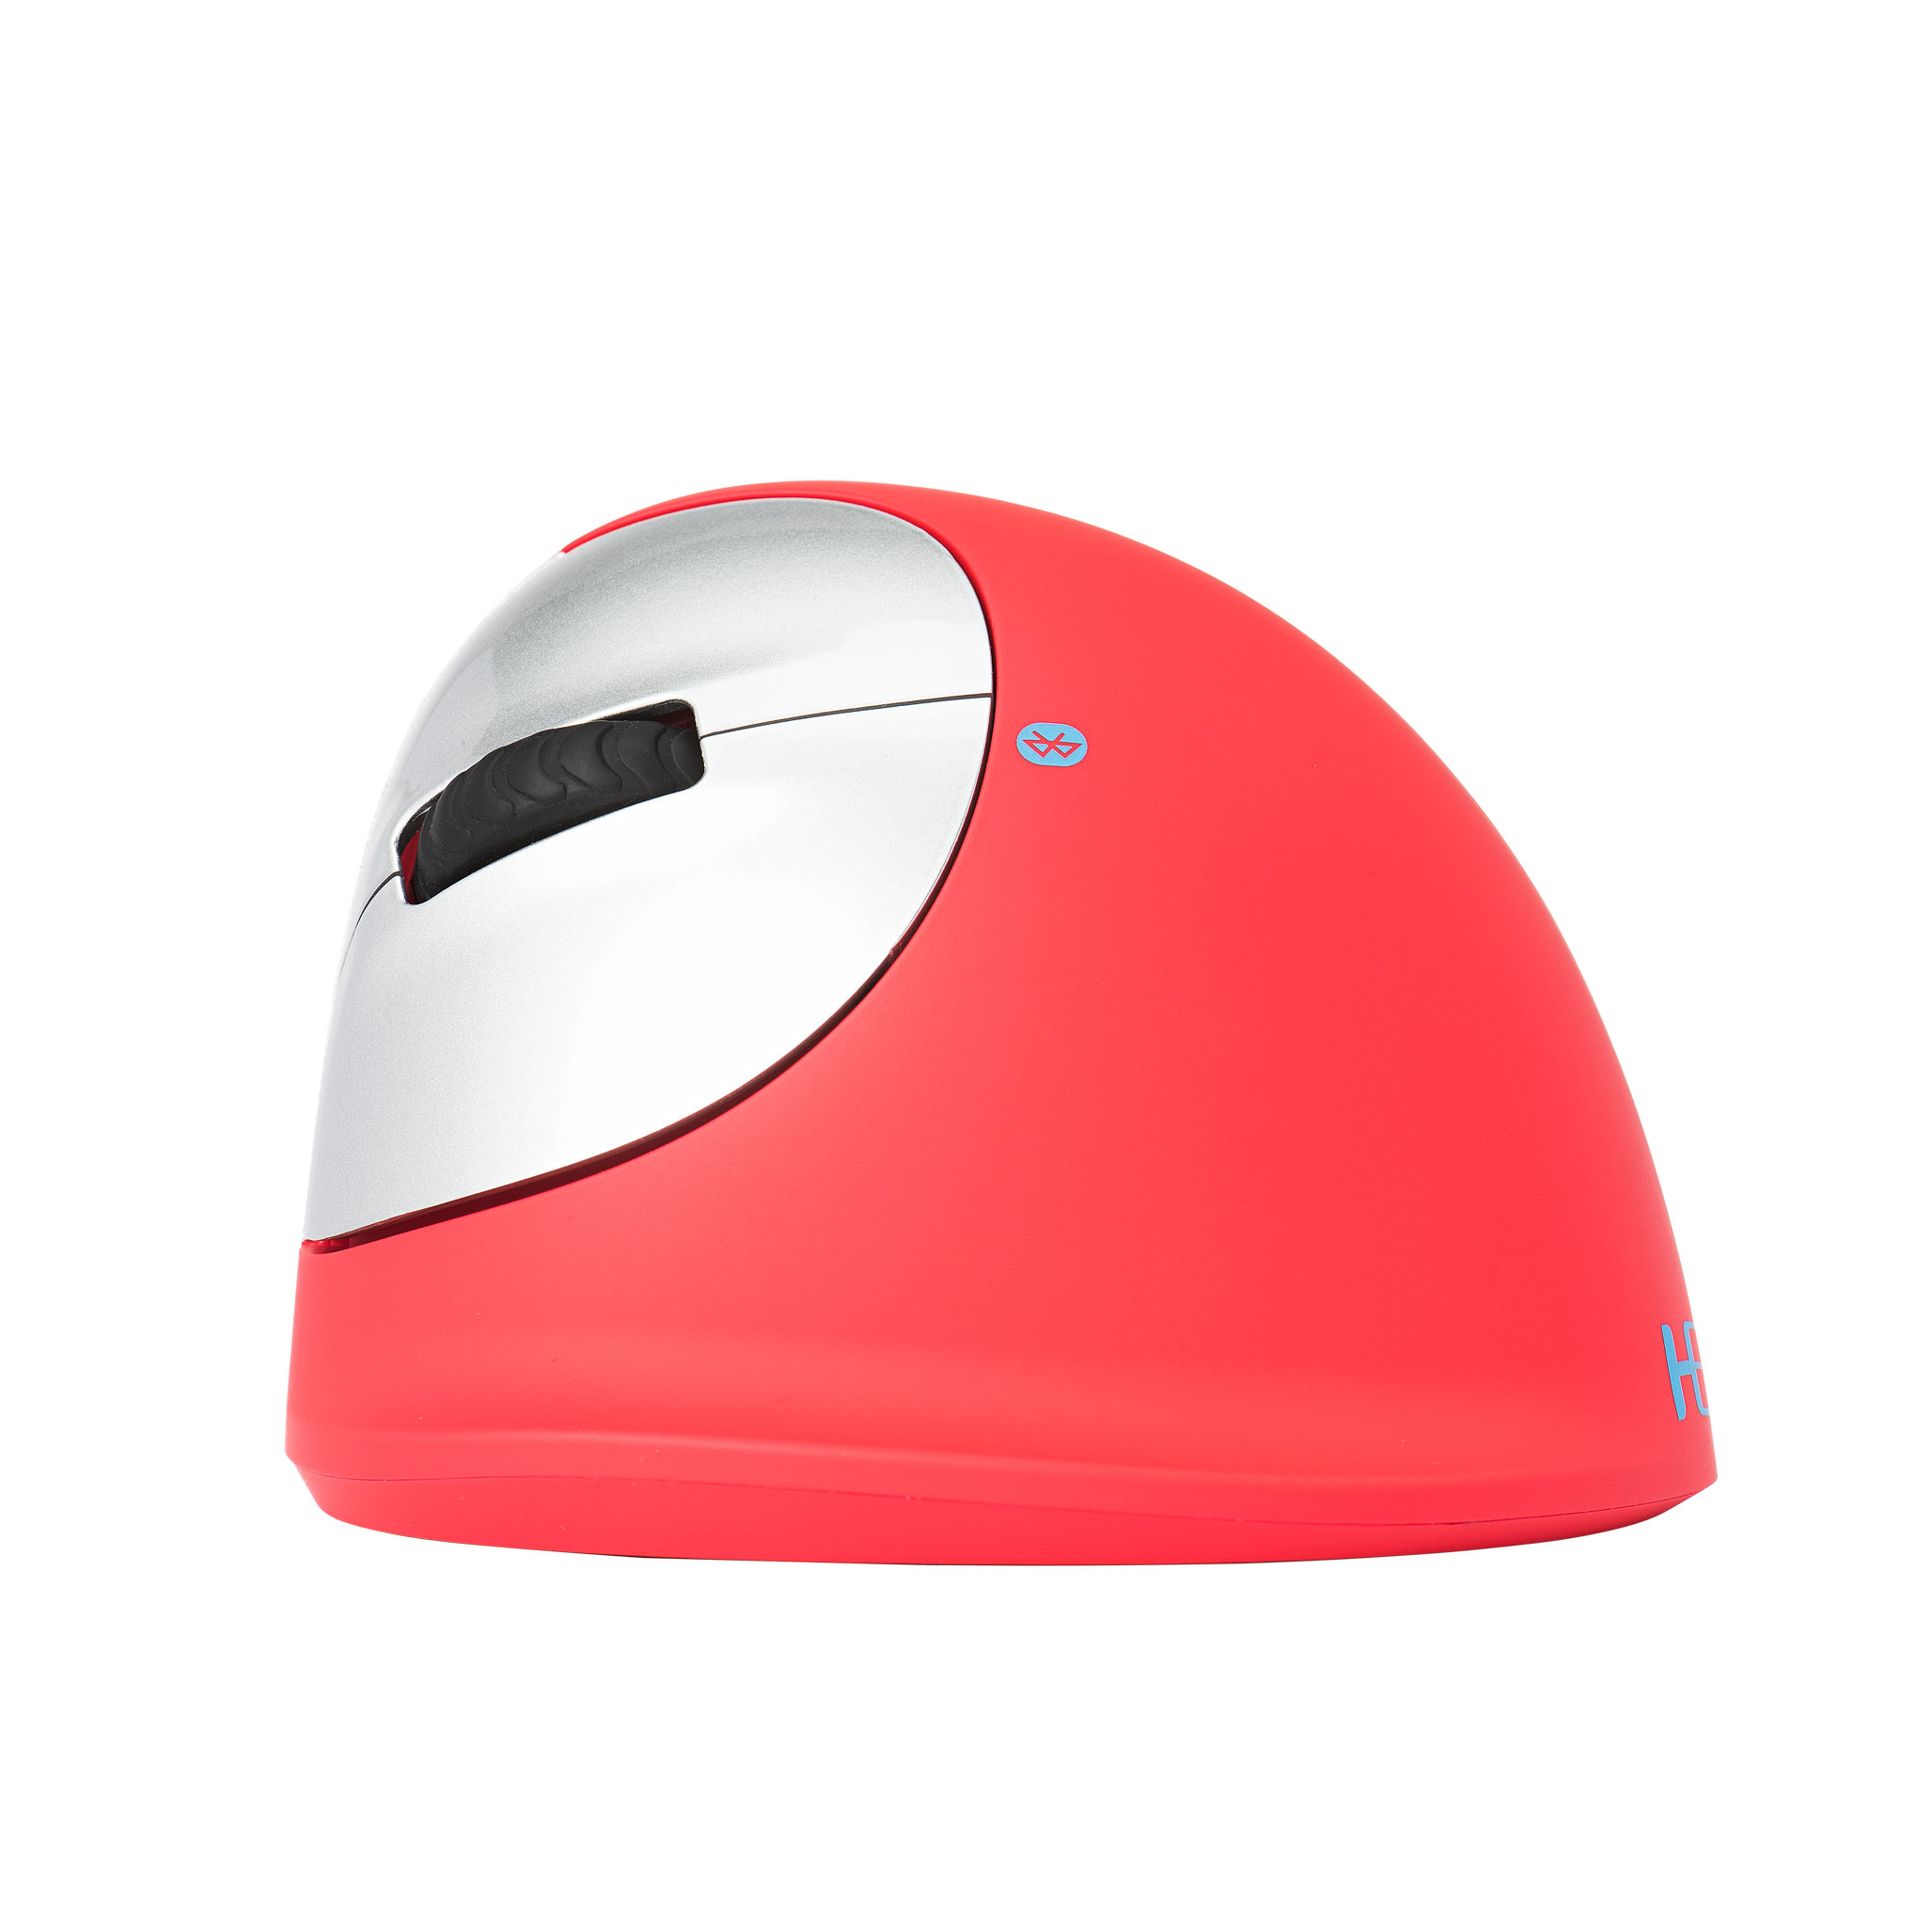 R-Go HE Sport Ergonomic Mouse,  Medium (165-195mm), Left Handed, Bluetooth, Red - 4